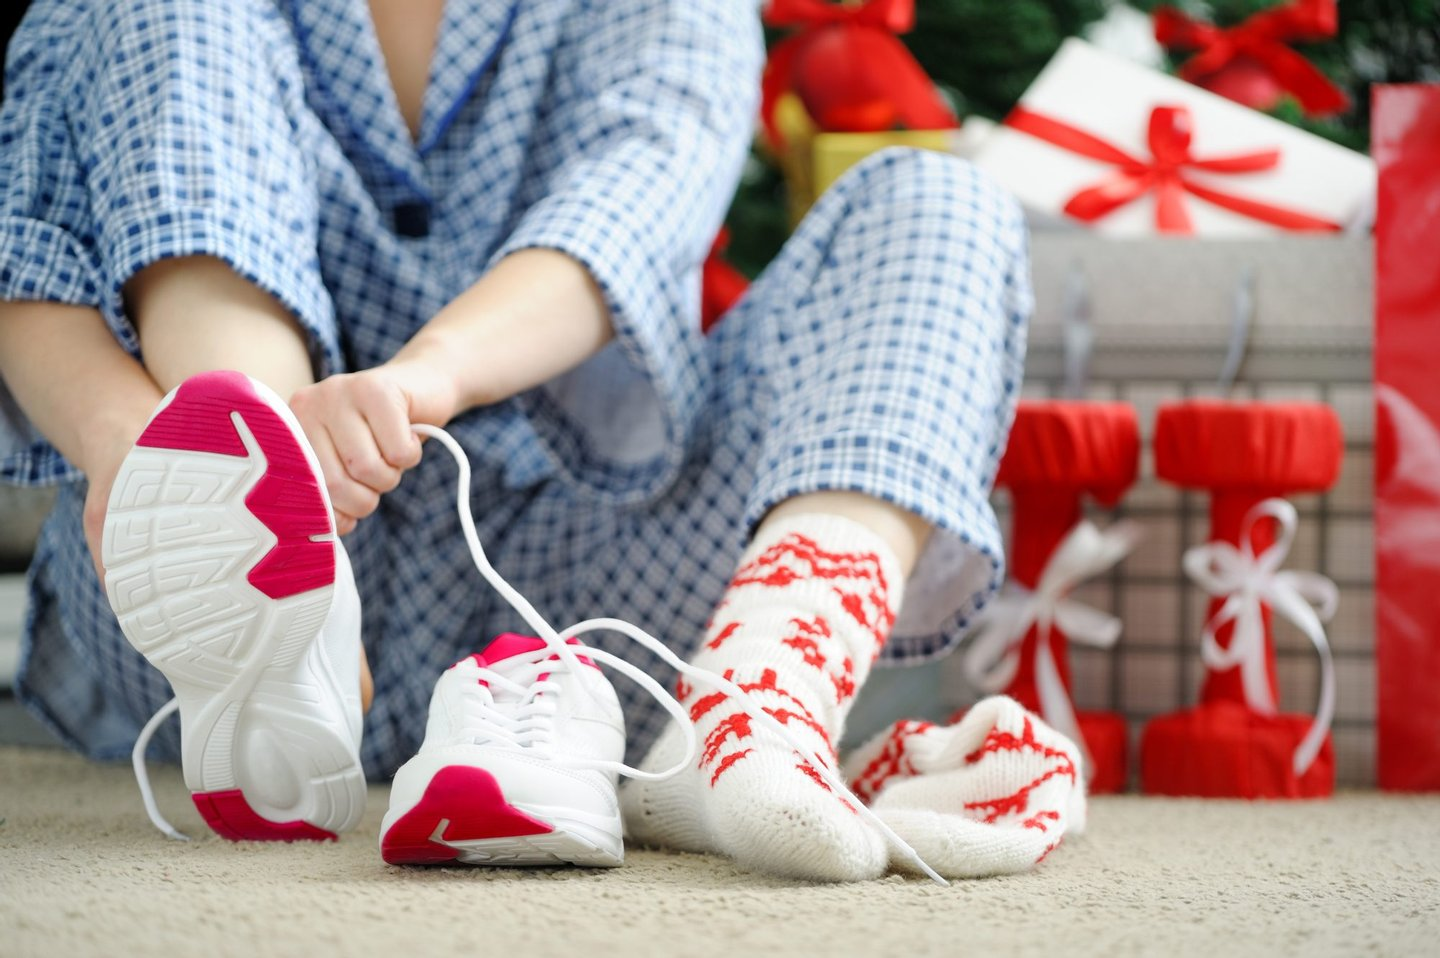 Morning, Tighten, Women, Sports Clothing, Christmas Present, Shoelace, Unpacking, Holding, Jogging, Action, Joy, Red, Low, Sport, Lifestyles, Indoors, People, Gift, Living Room, Footpath, Christmas, Birthday, Shoe,